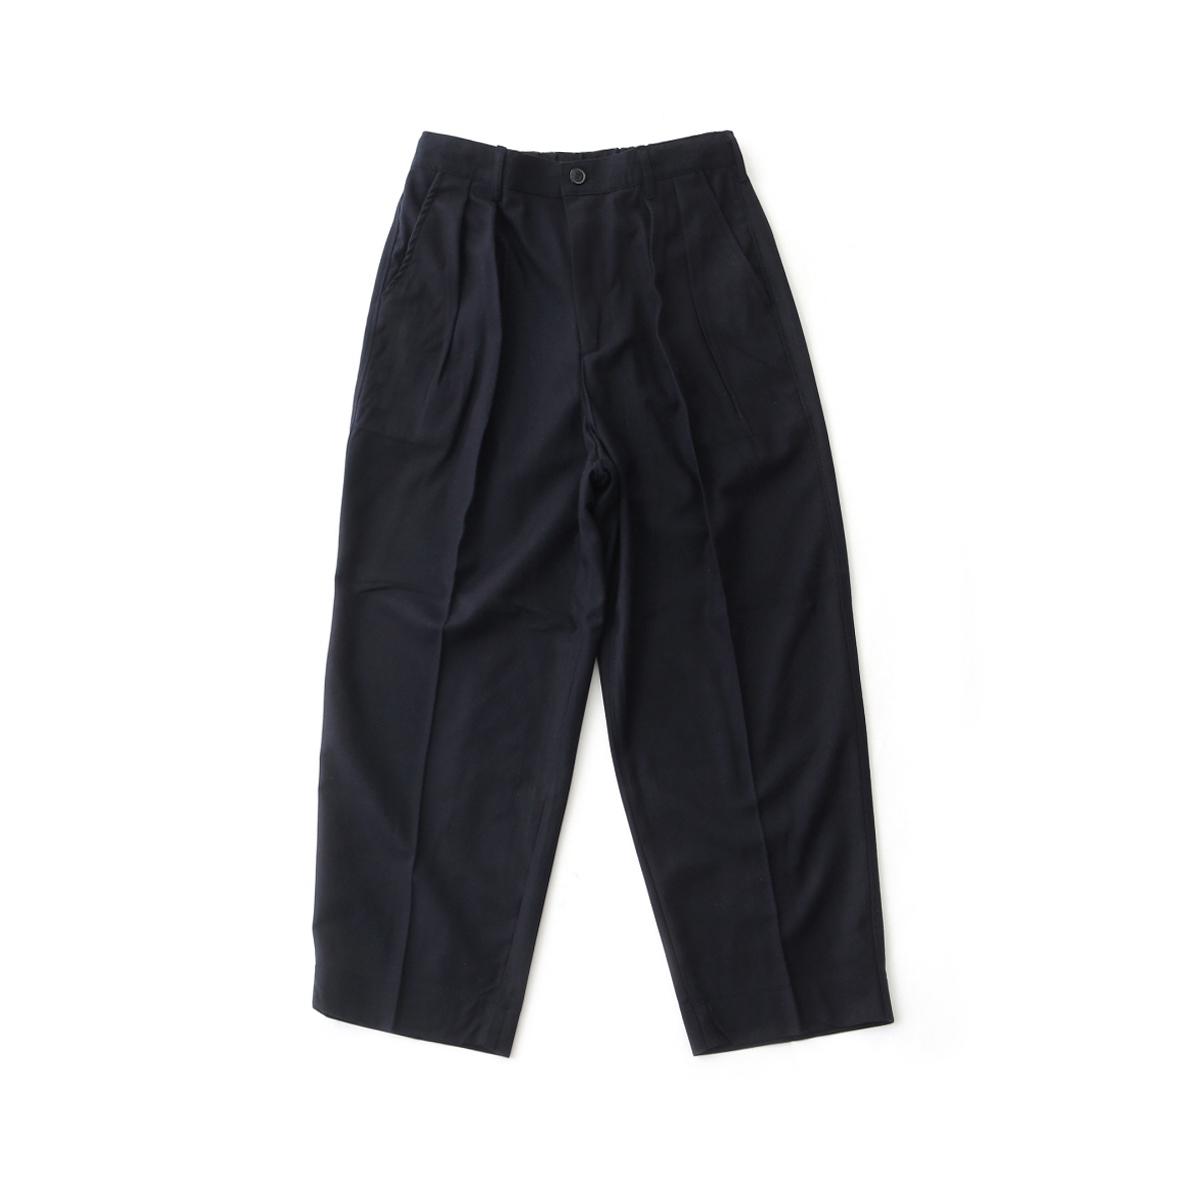 [DAILY INN] LOBBY BOY EASY WIDE TR WOOL PANTS / LOOSE TAPERED FIT 'NAVY WOOL'